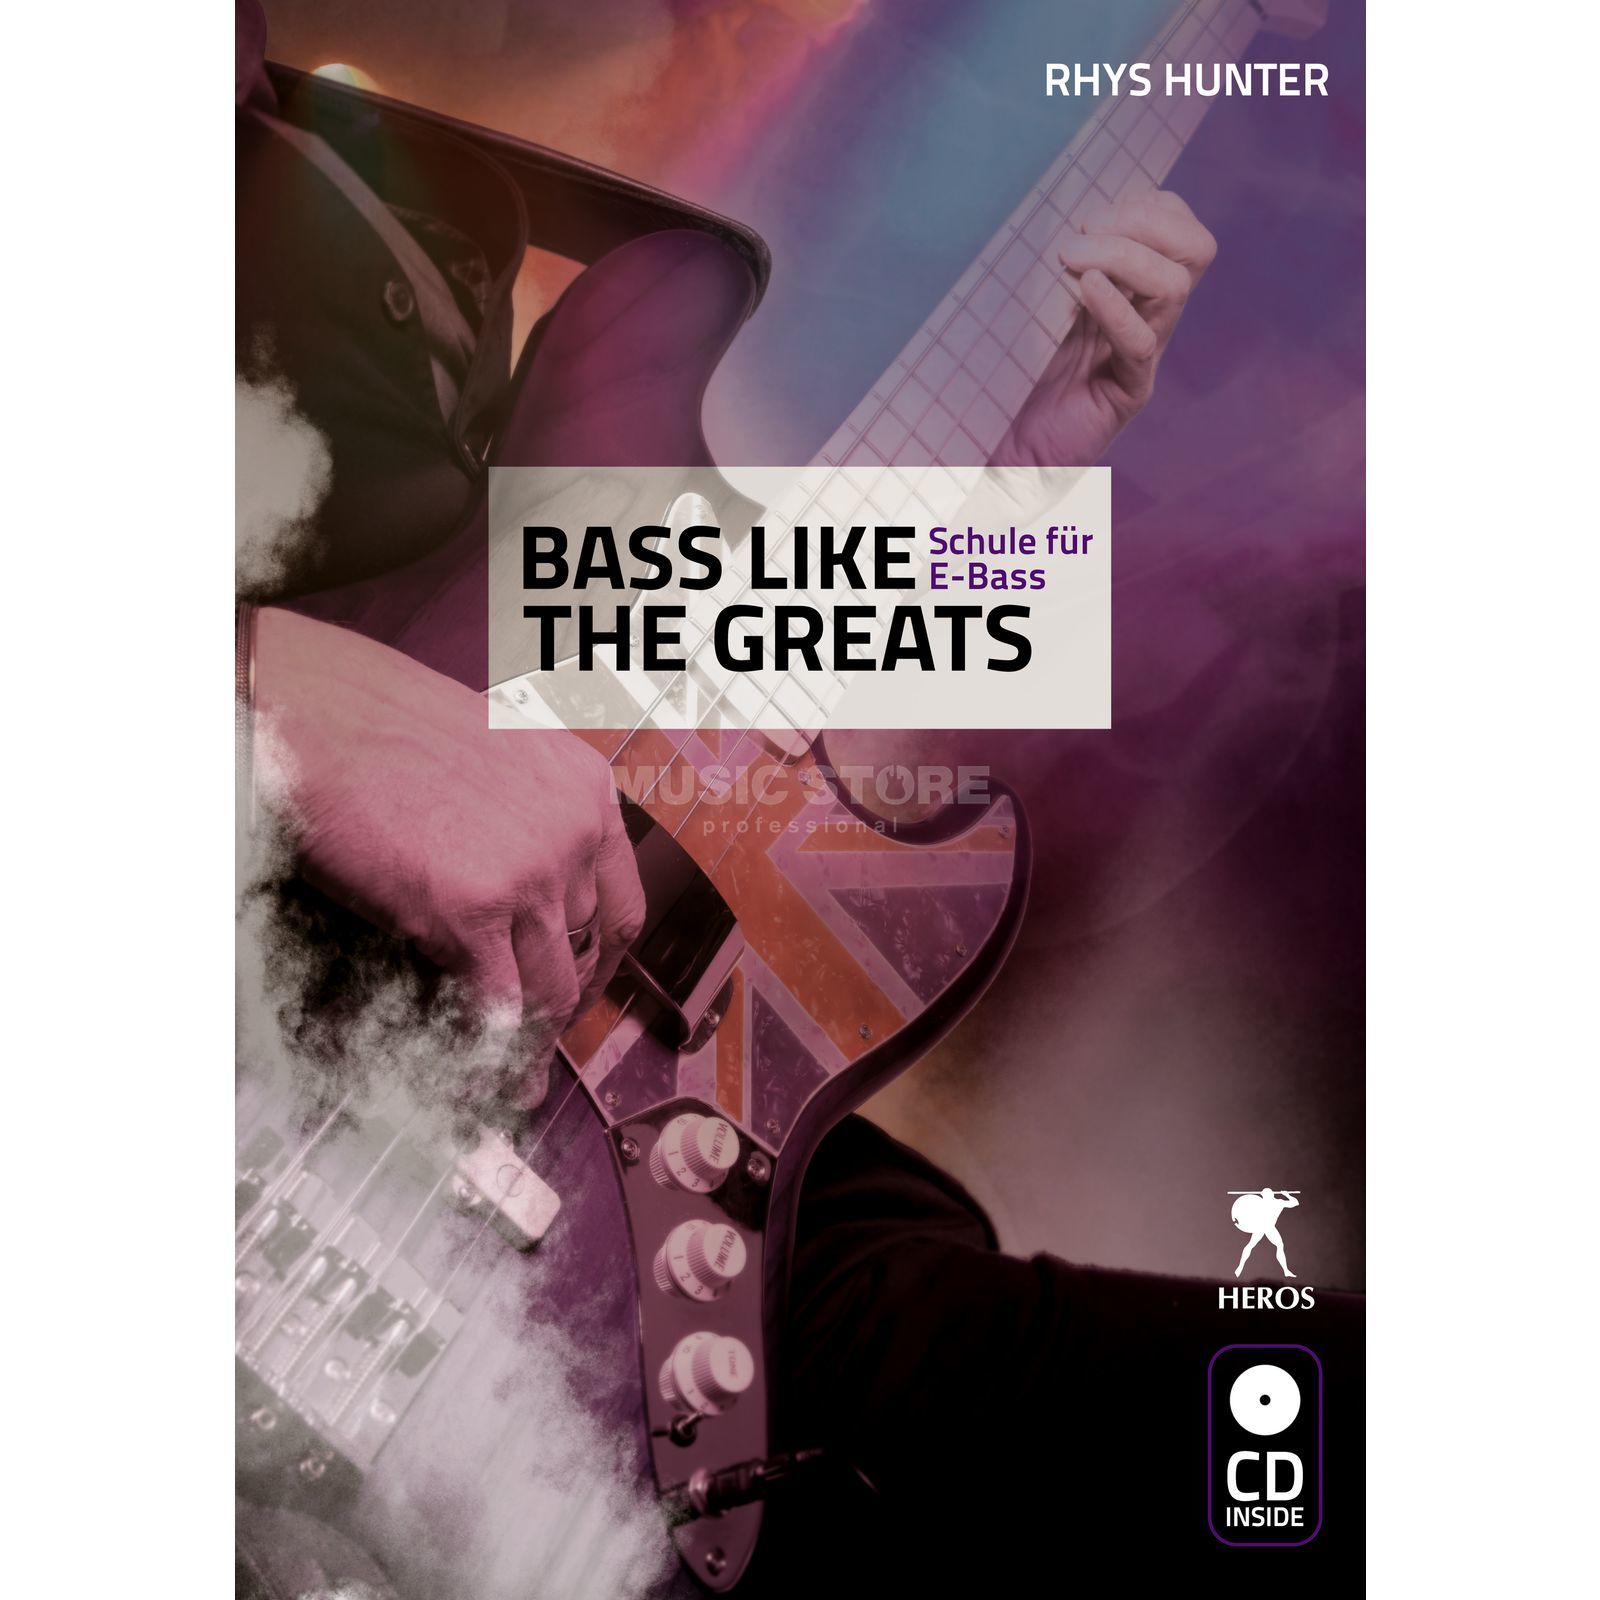 Heros-Verlag Bass Like The Greats Rhys Hunter,inkl. CD Produktbild